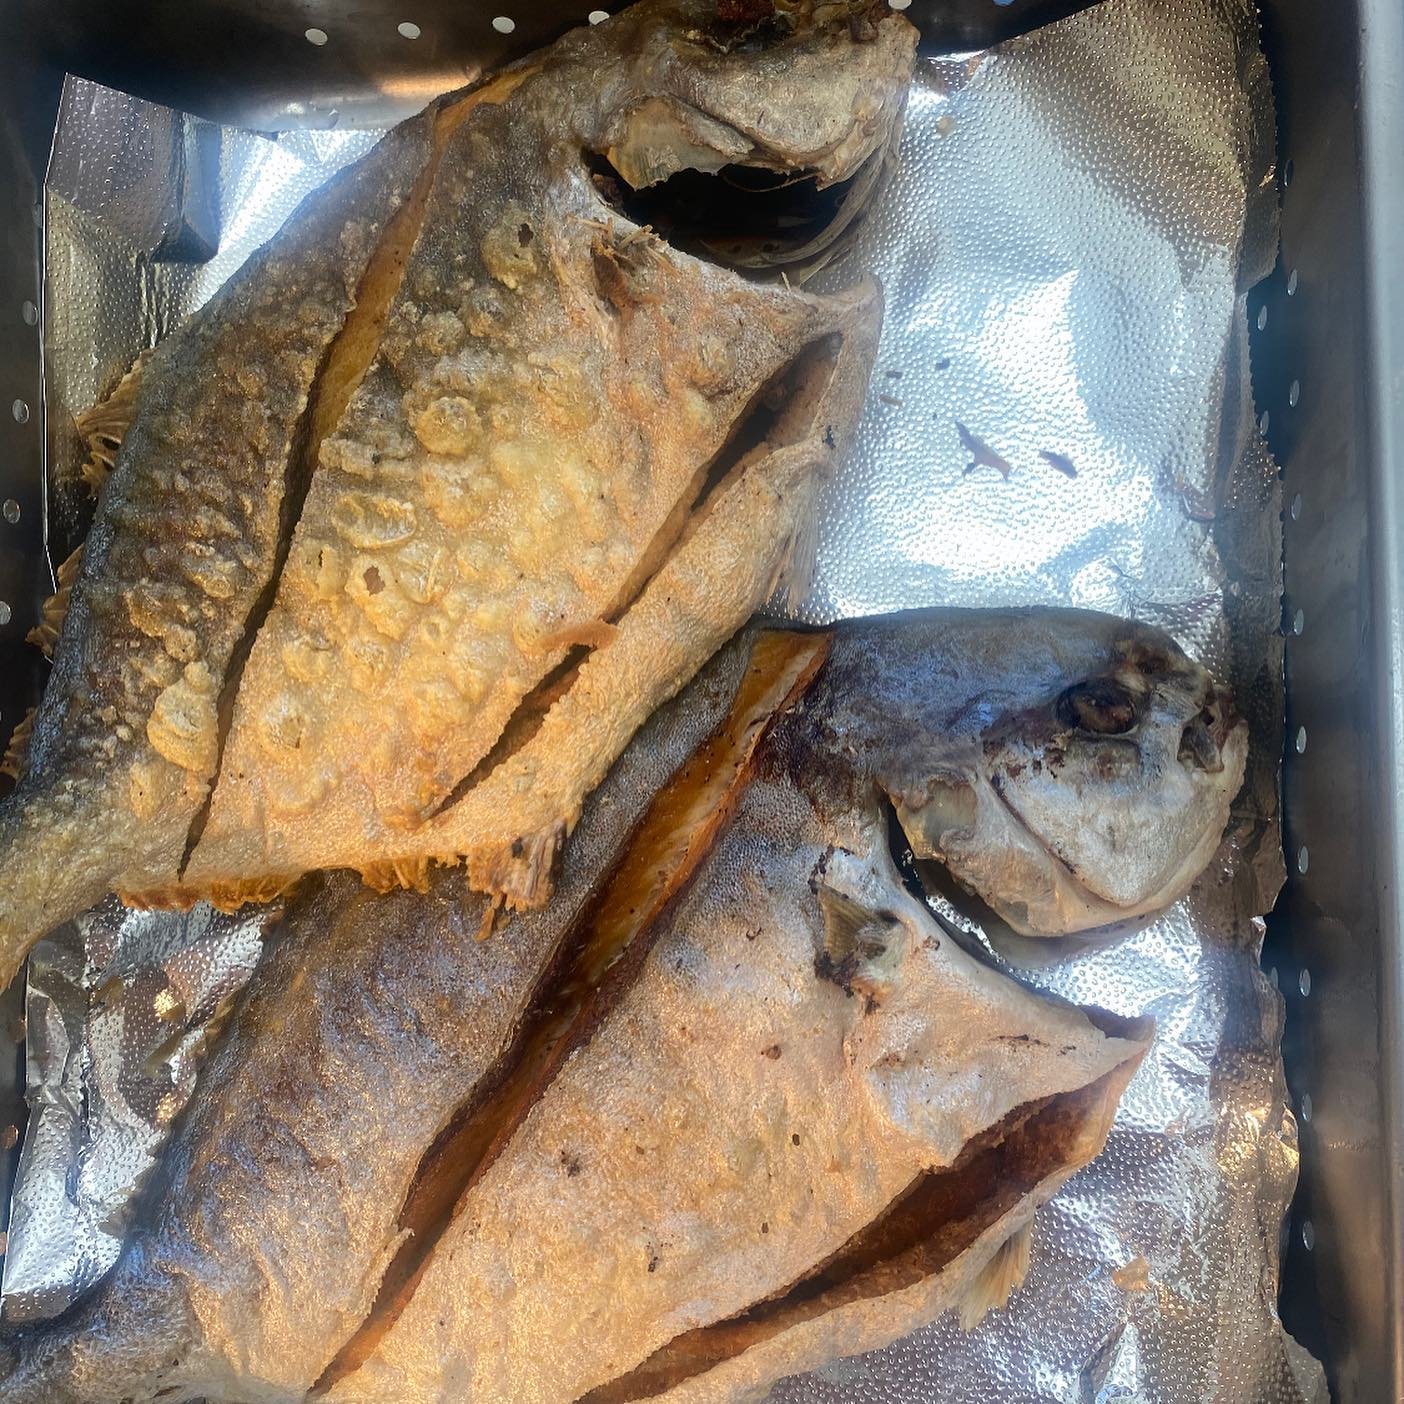 two whole cooked fish on a tray